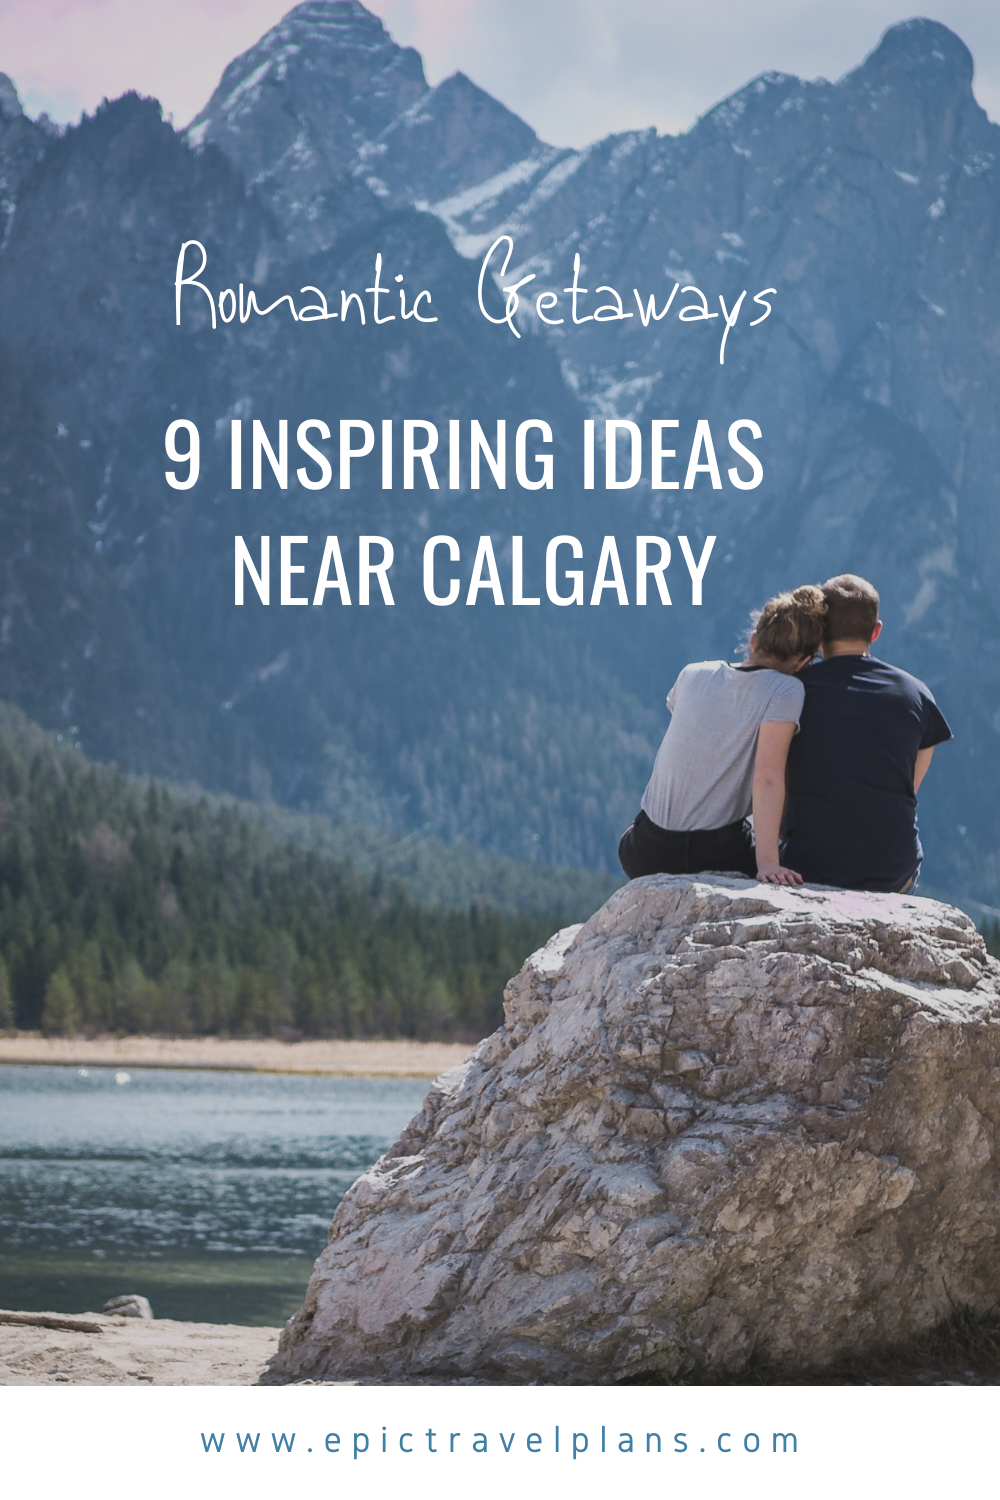 Romantic weekends near Calgary